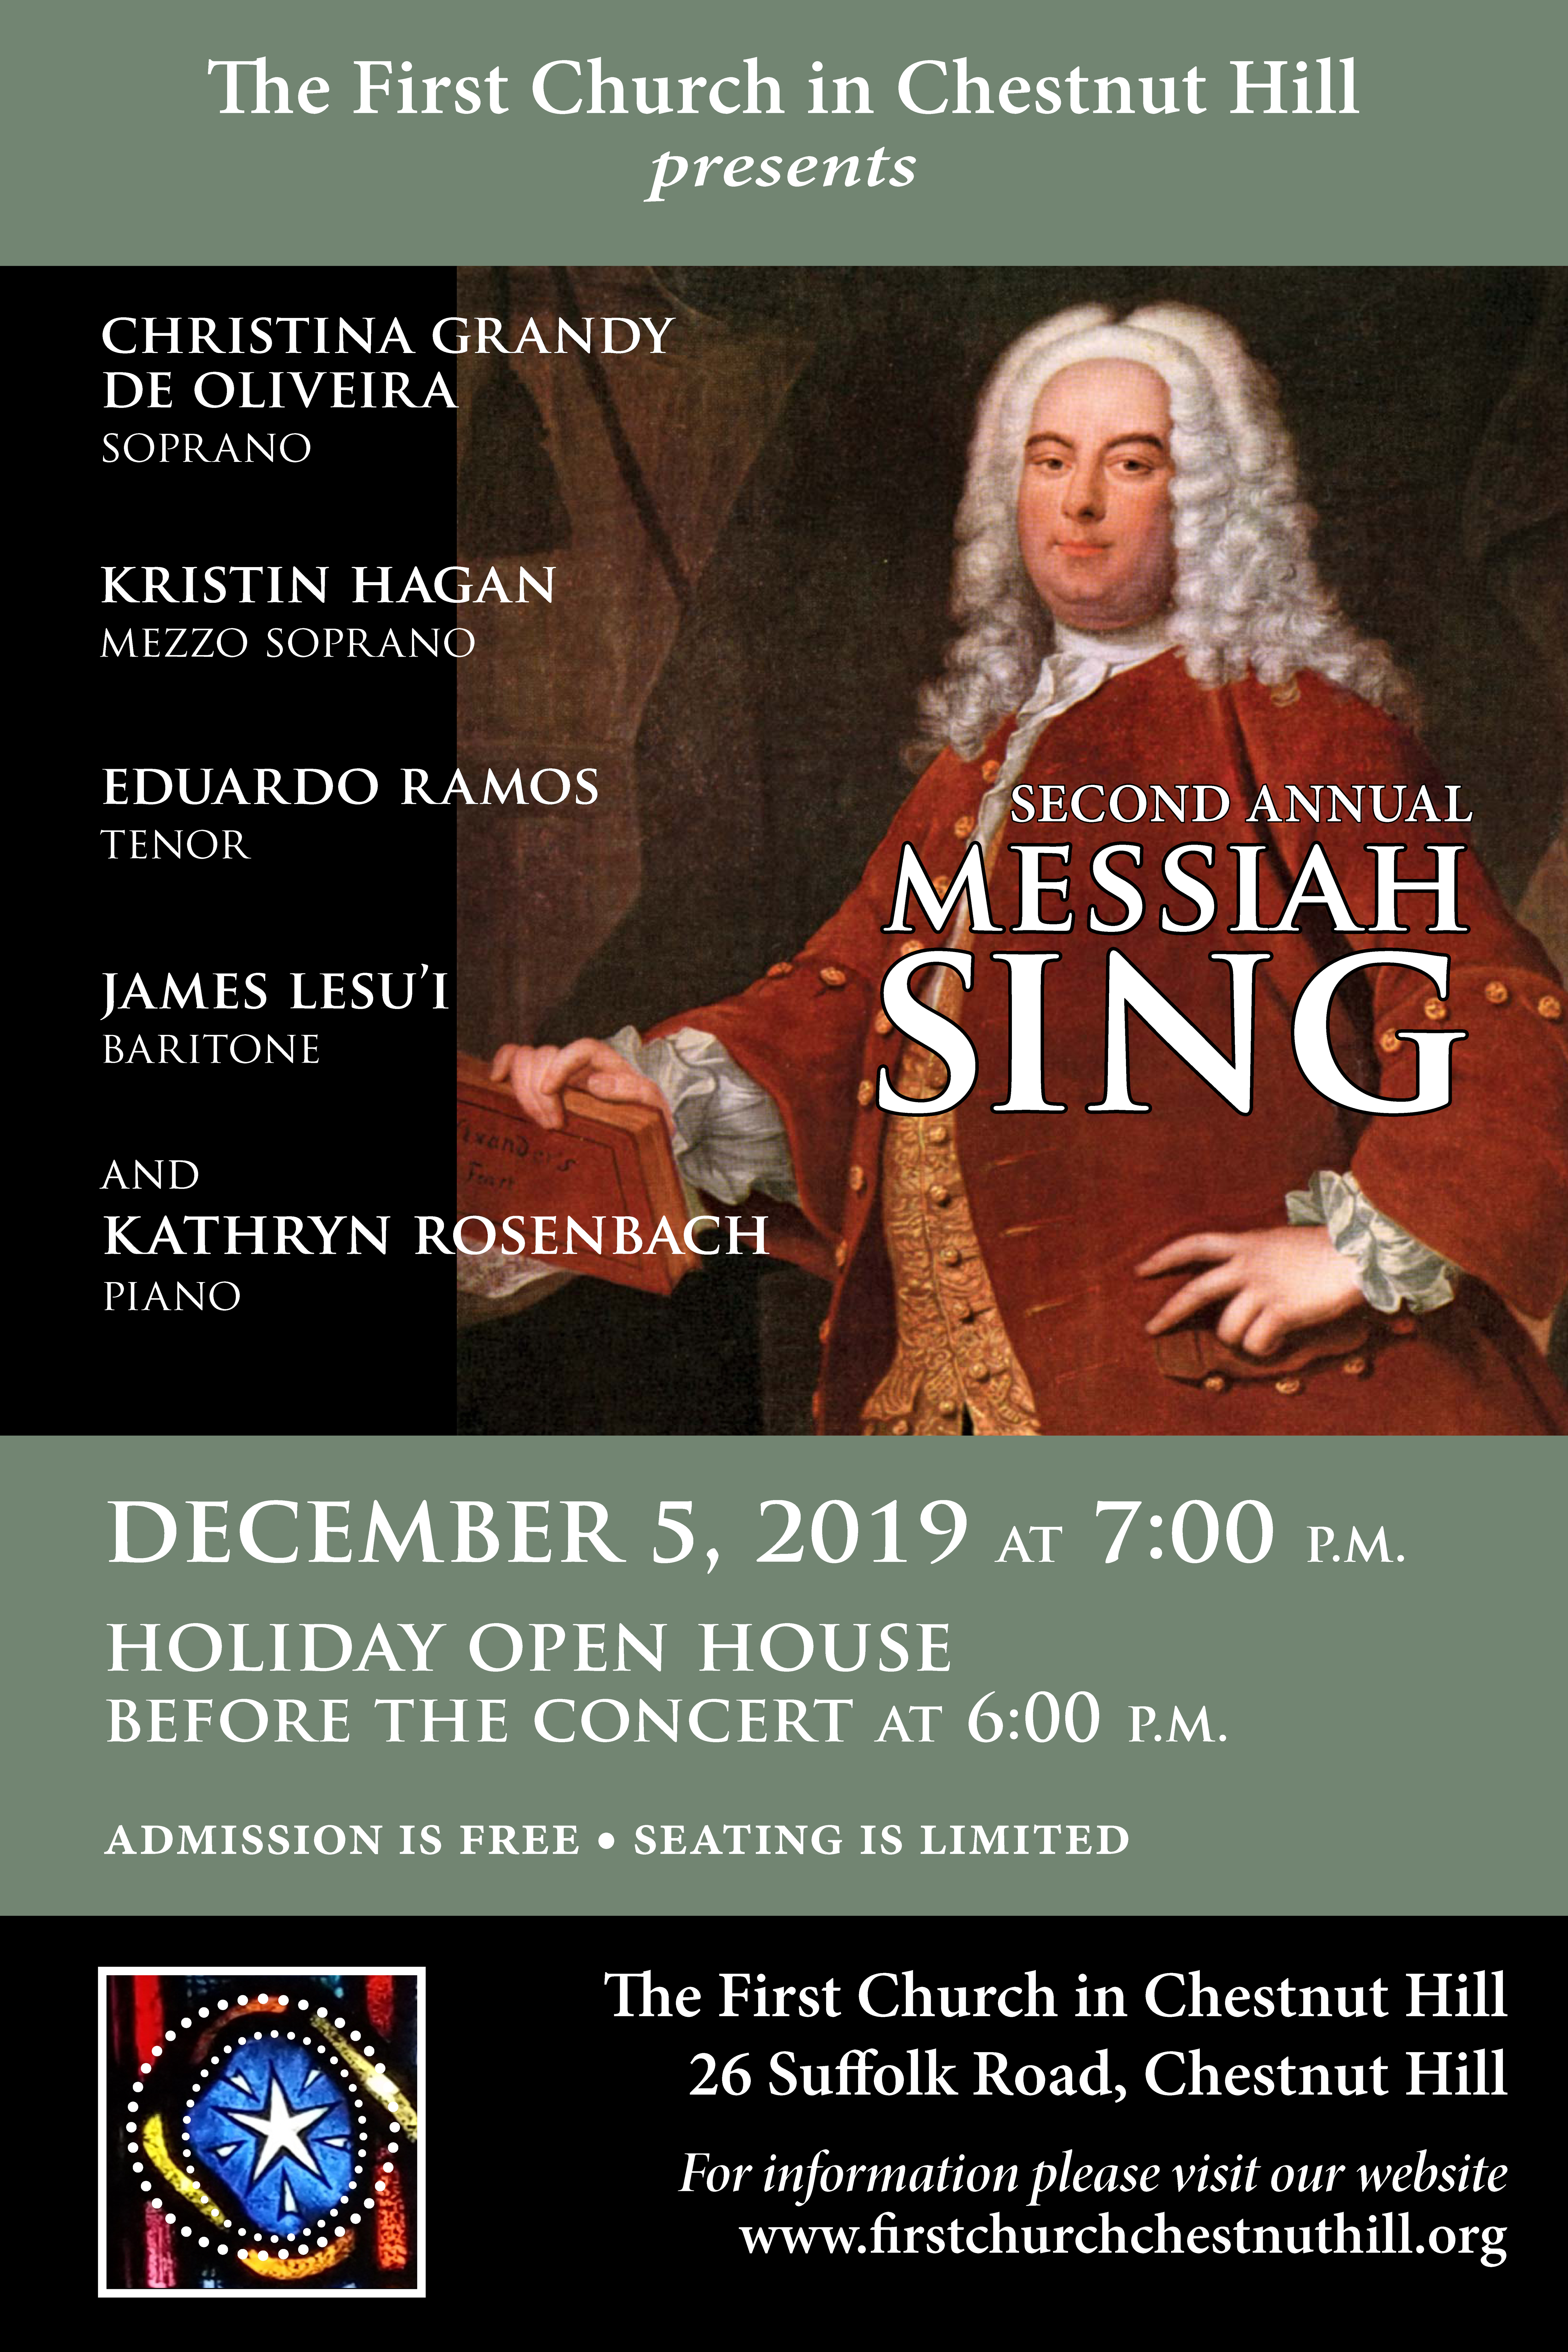 Second Annual Holiday Open House & Messiah Sing